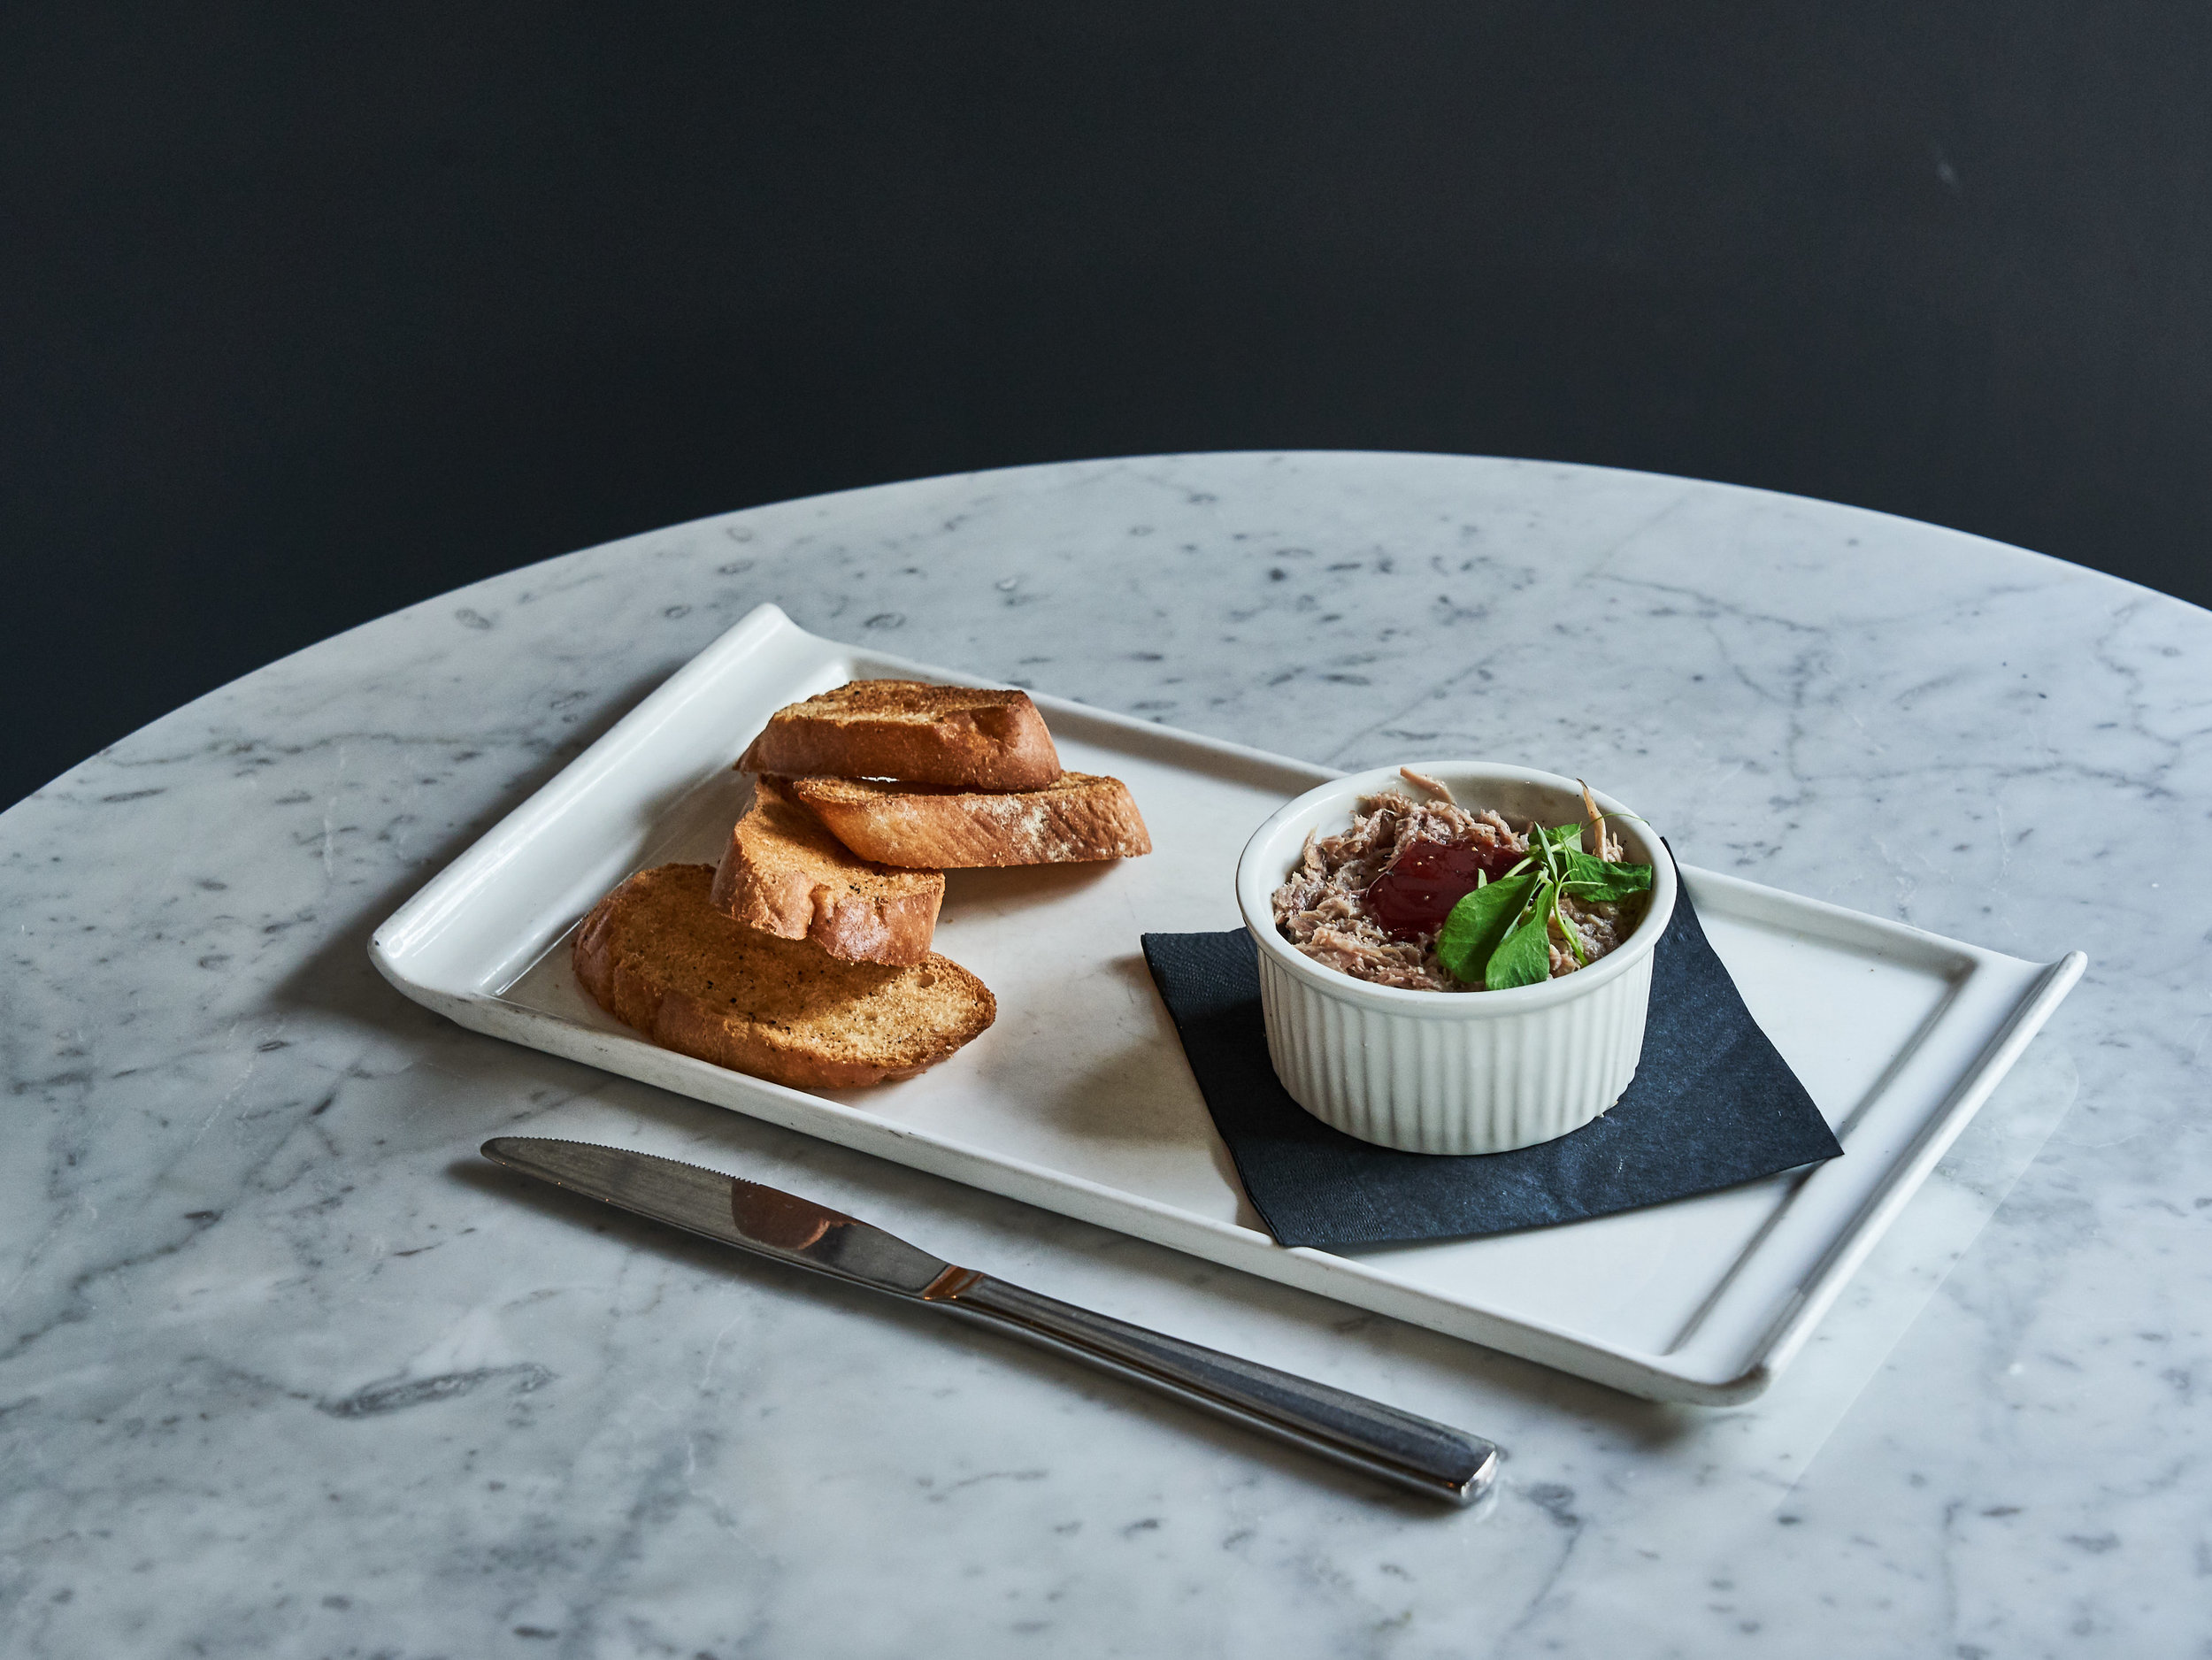 Endswell_DuckRillette.jpg